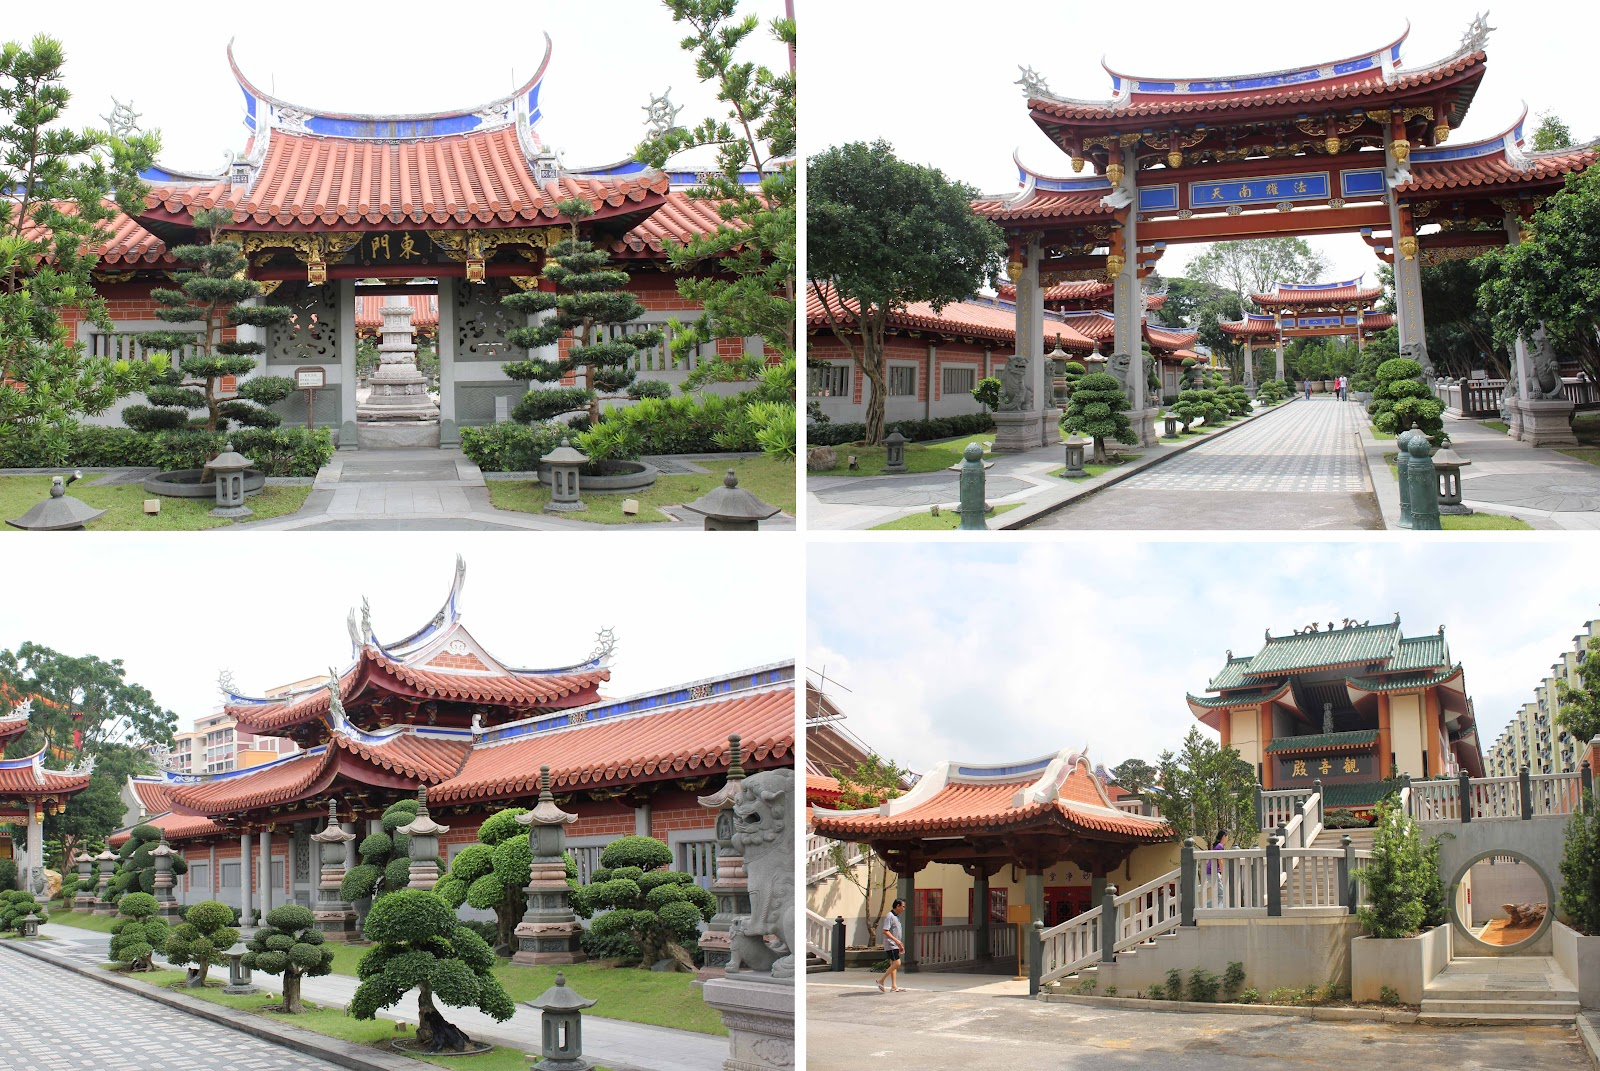 Lian Shan Shuang Lin Temple Singapore Map,Tourist Attractions in Singapore,Map of Lian Shan Shuang Lin Temple Singapore,Lian Shan Shuang Lin Temple Singapore accommodation destinations hotels map reviews photos pictures